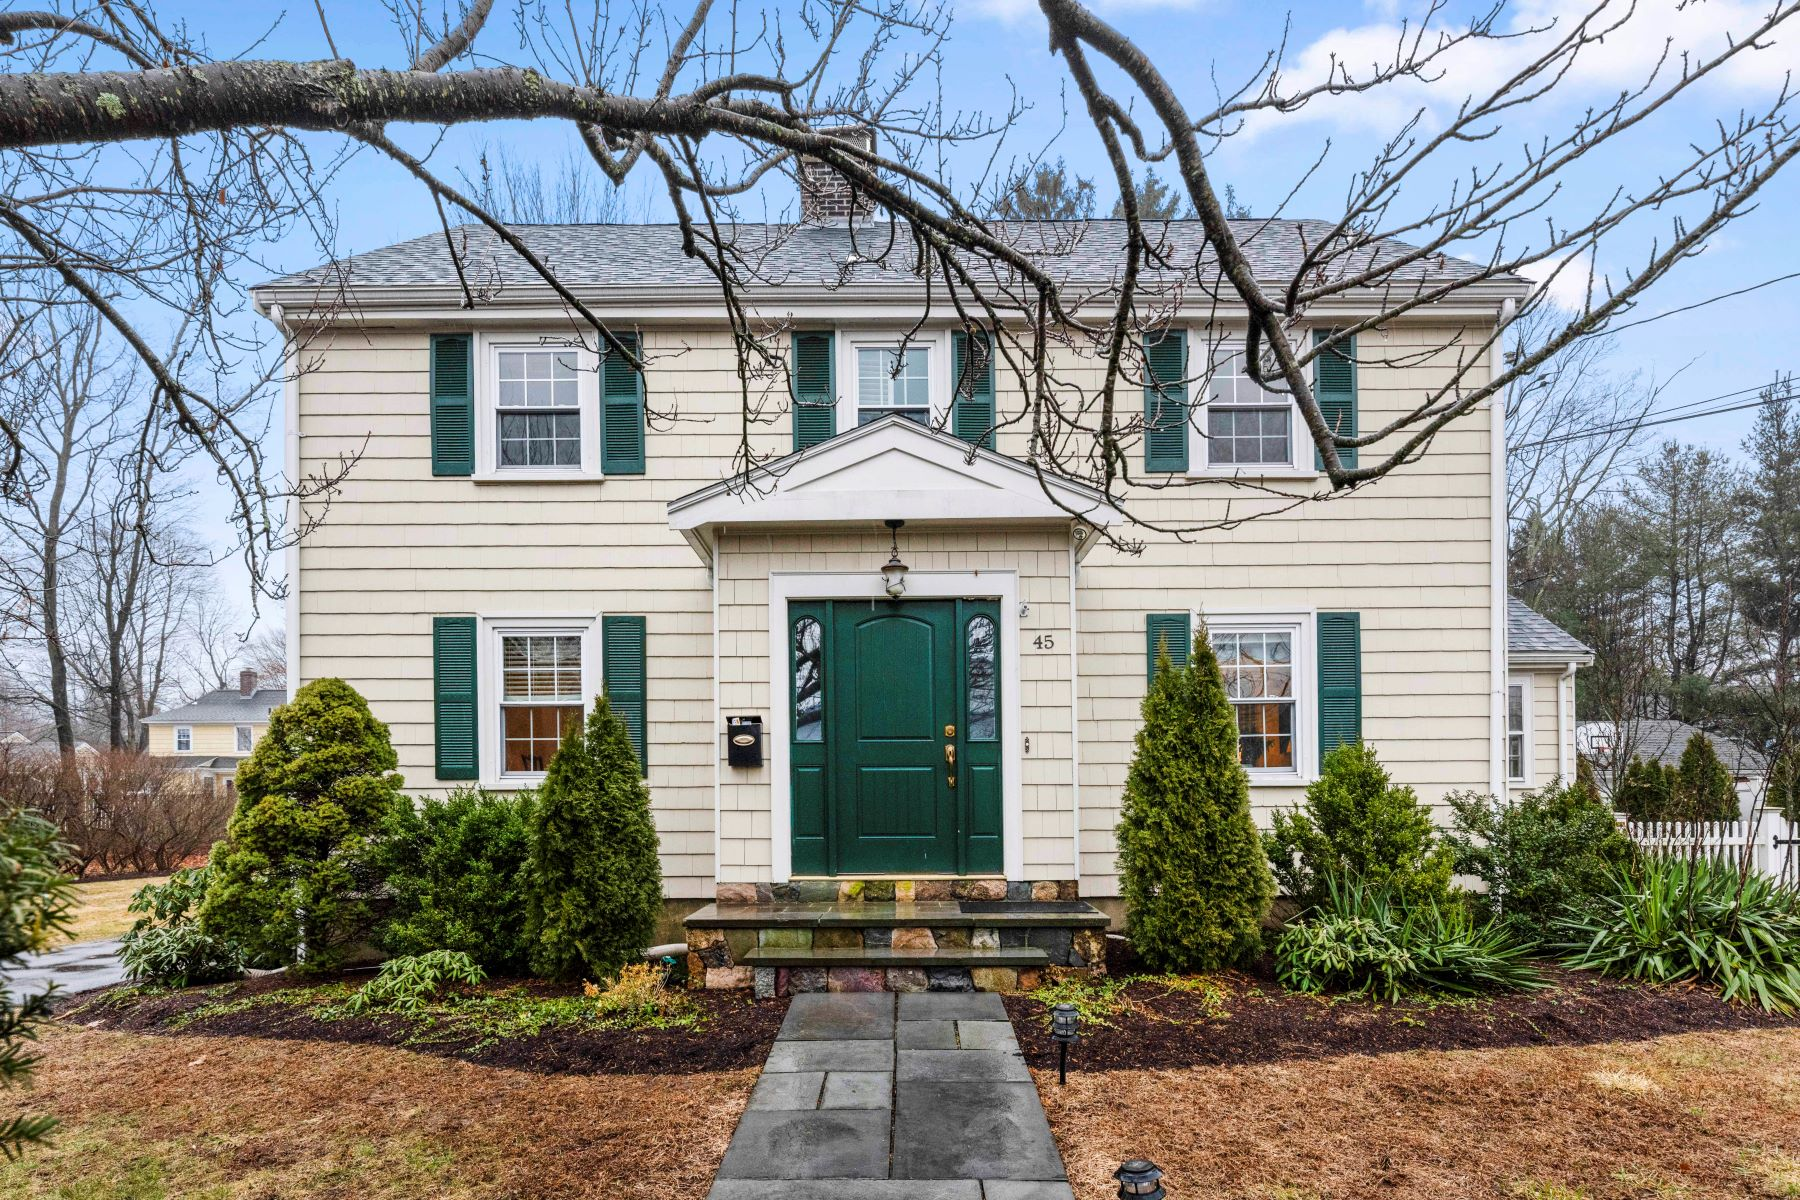 Single Family Homes for Sale at 45 Whiting Ave, Dedham 45 Whiting Ave Dedham, Massachusetts 02026 United States